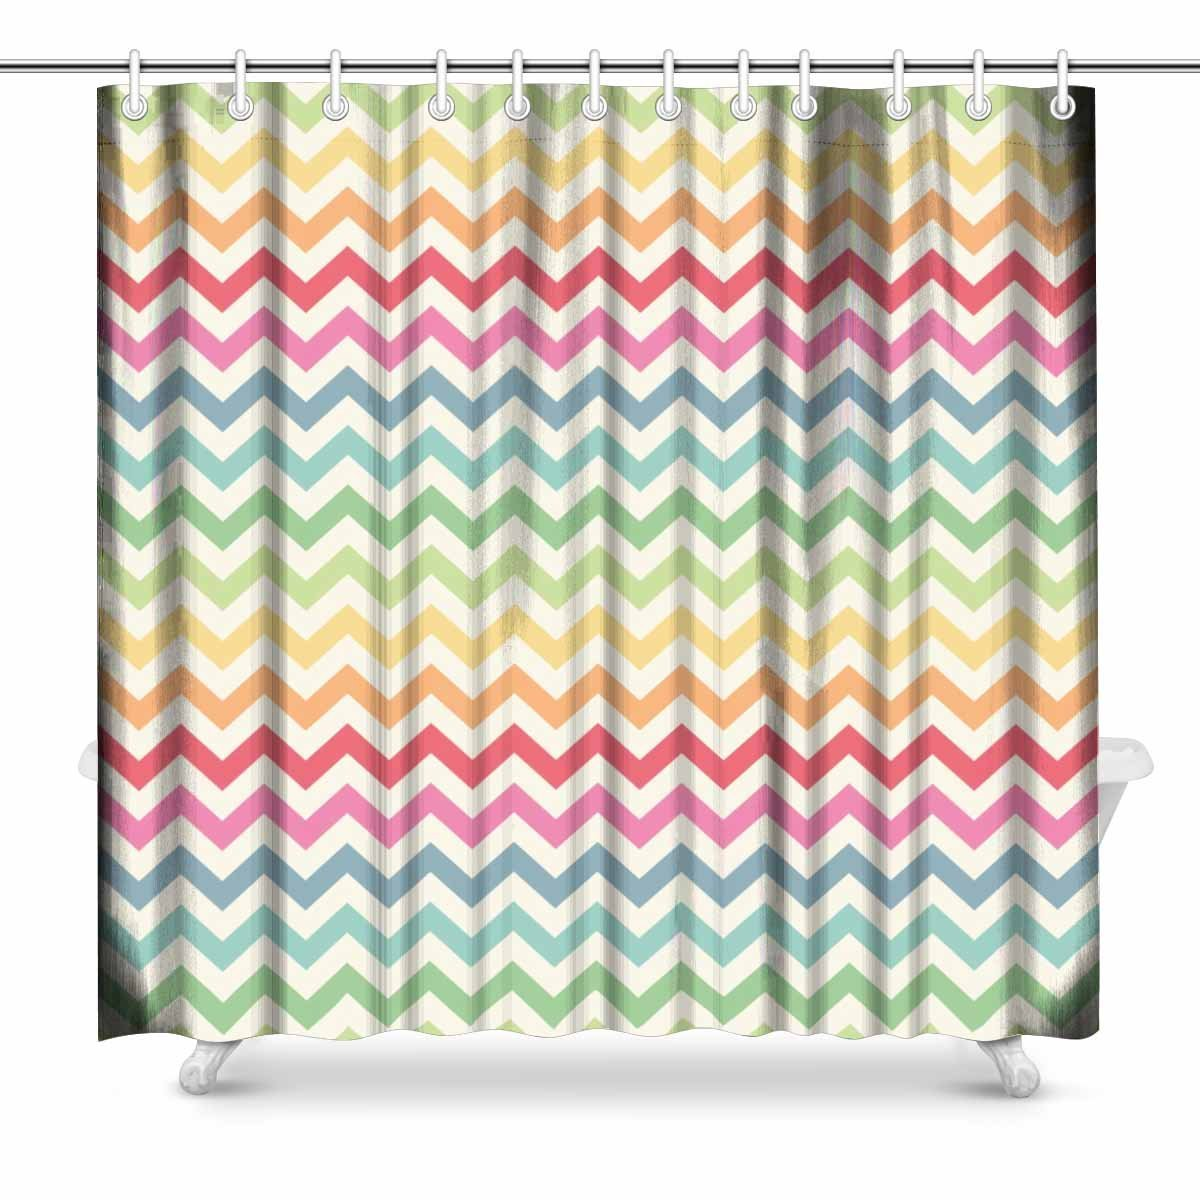 Aplysia Cute Retro Chevron Pattern Rainbow Colors Print Polyester Fabric Shower Curtain 72 X Inches